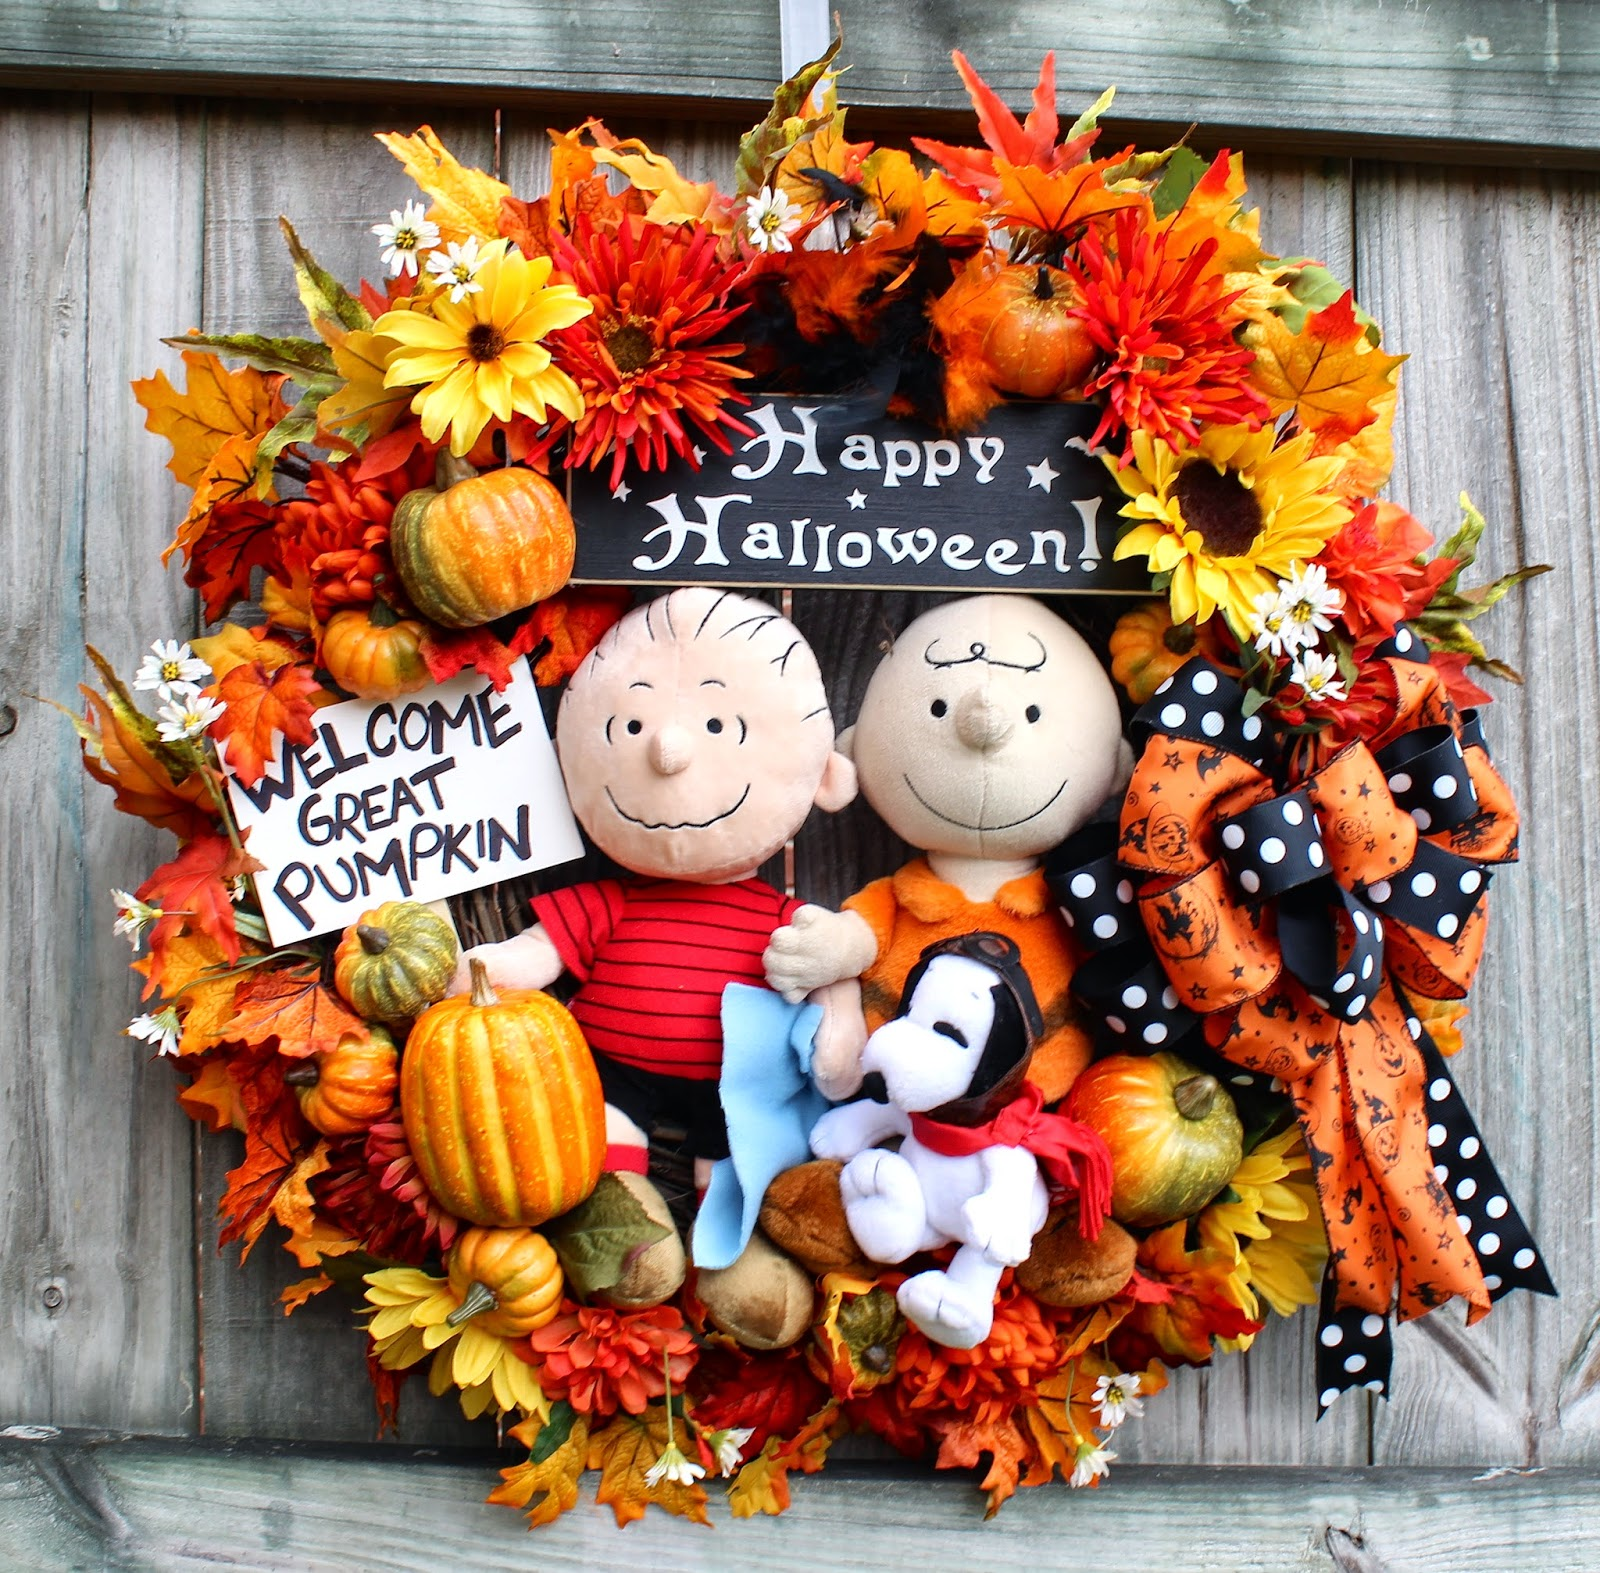 Great Pumpkin Charlie Brown Halloween Wreath Large Peanuts Snoopy Linus Happy Sign Black Sunflowers Red Baron